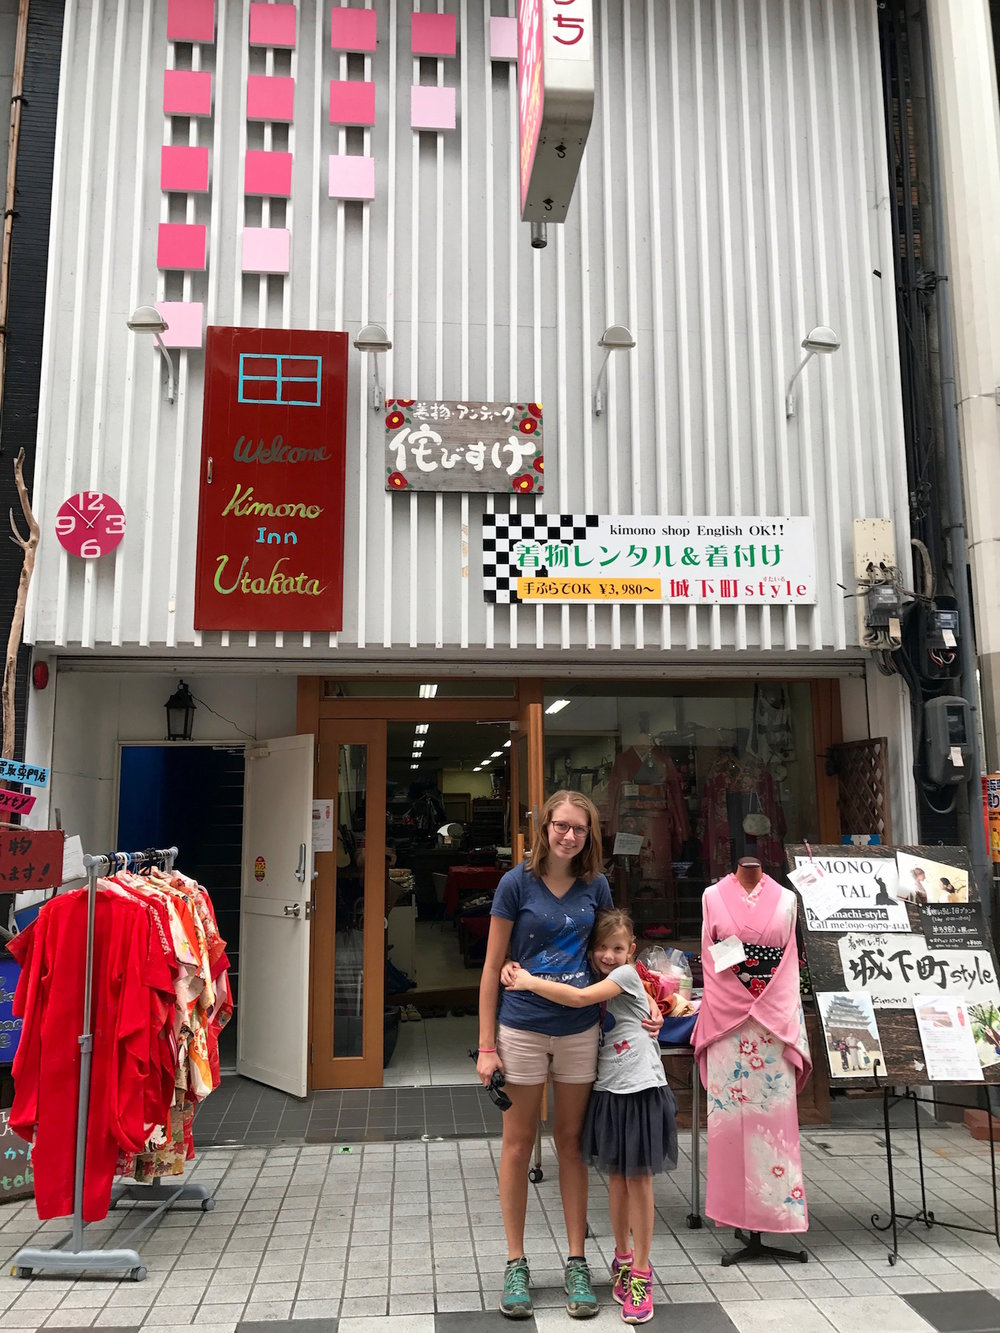 Autumn & Eden in front of Hikaru's kimono shop. See that white open door on the left? Just through that door is the stairway that led to the apartment where we stayed for a night.